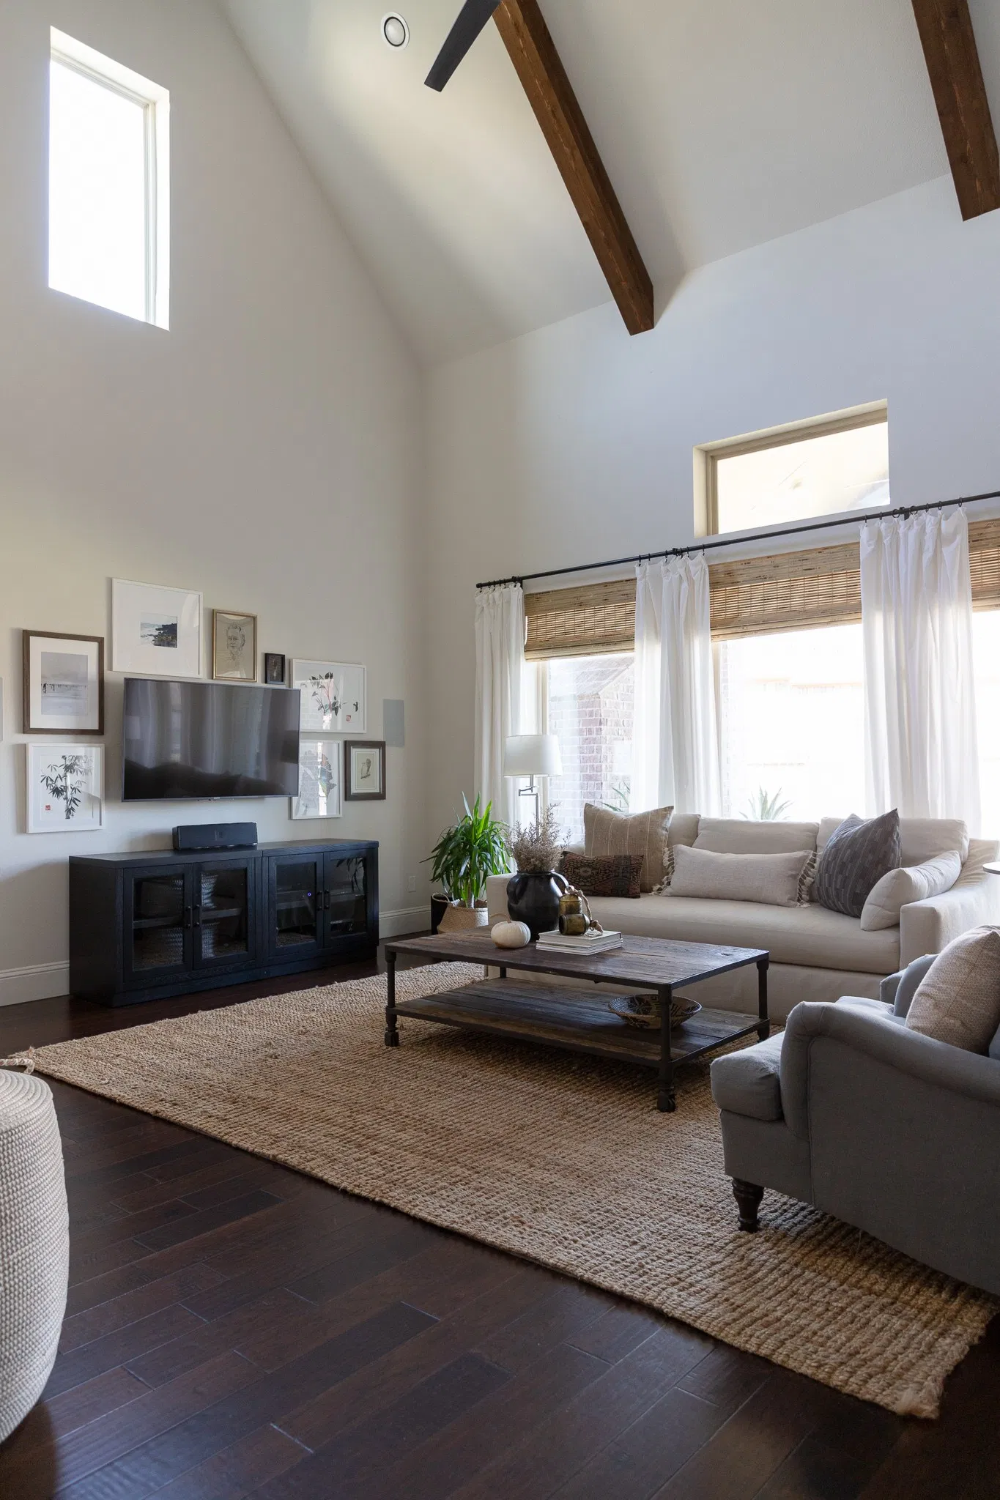 Late Fall Home Tour | Ikea pax, Clean living rooms